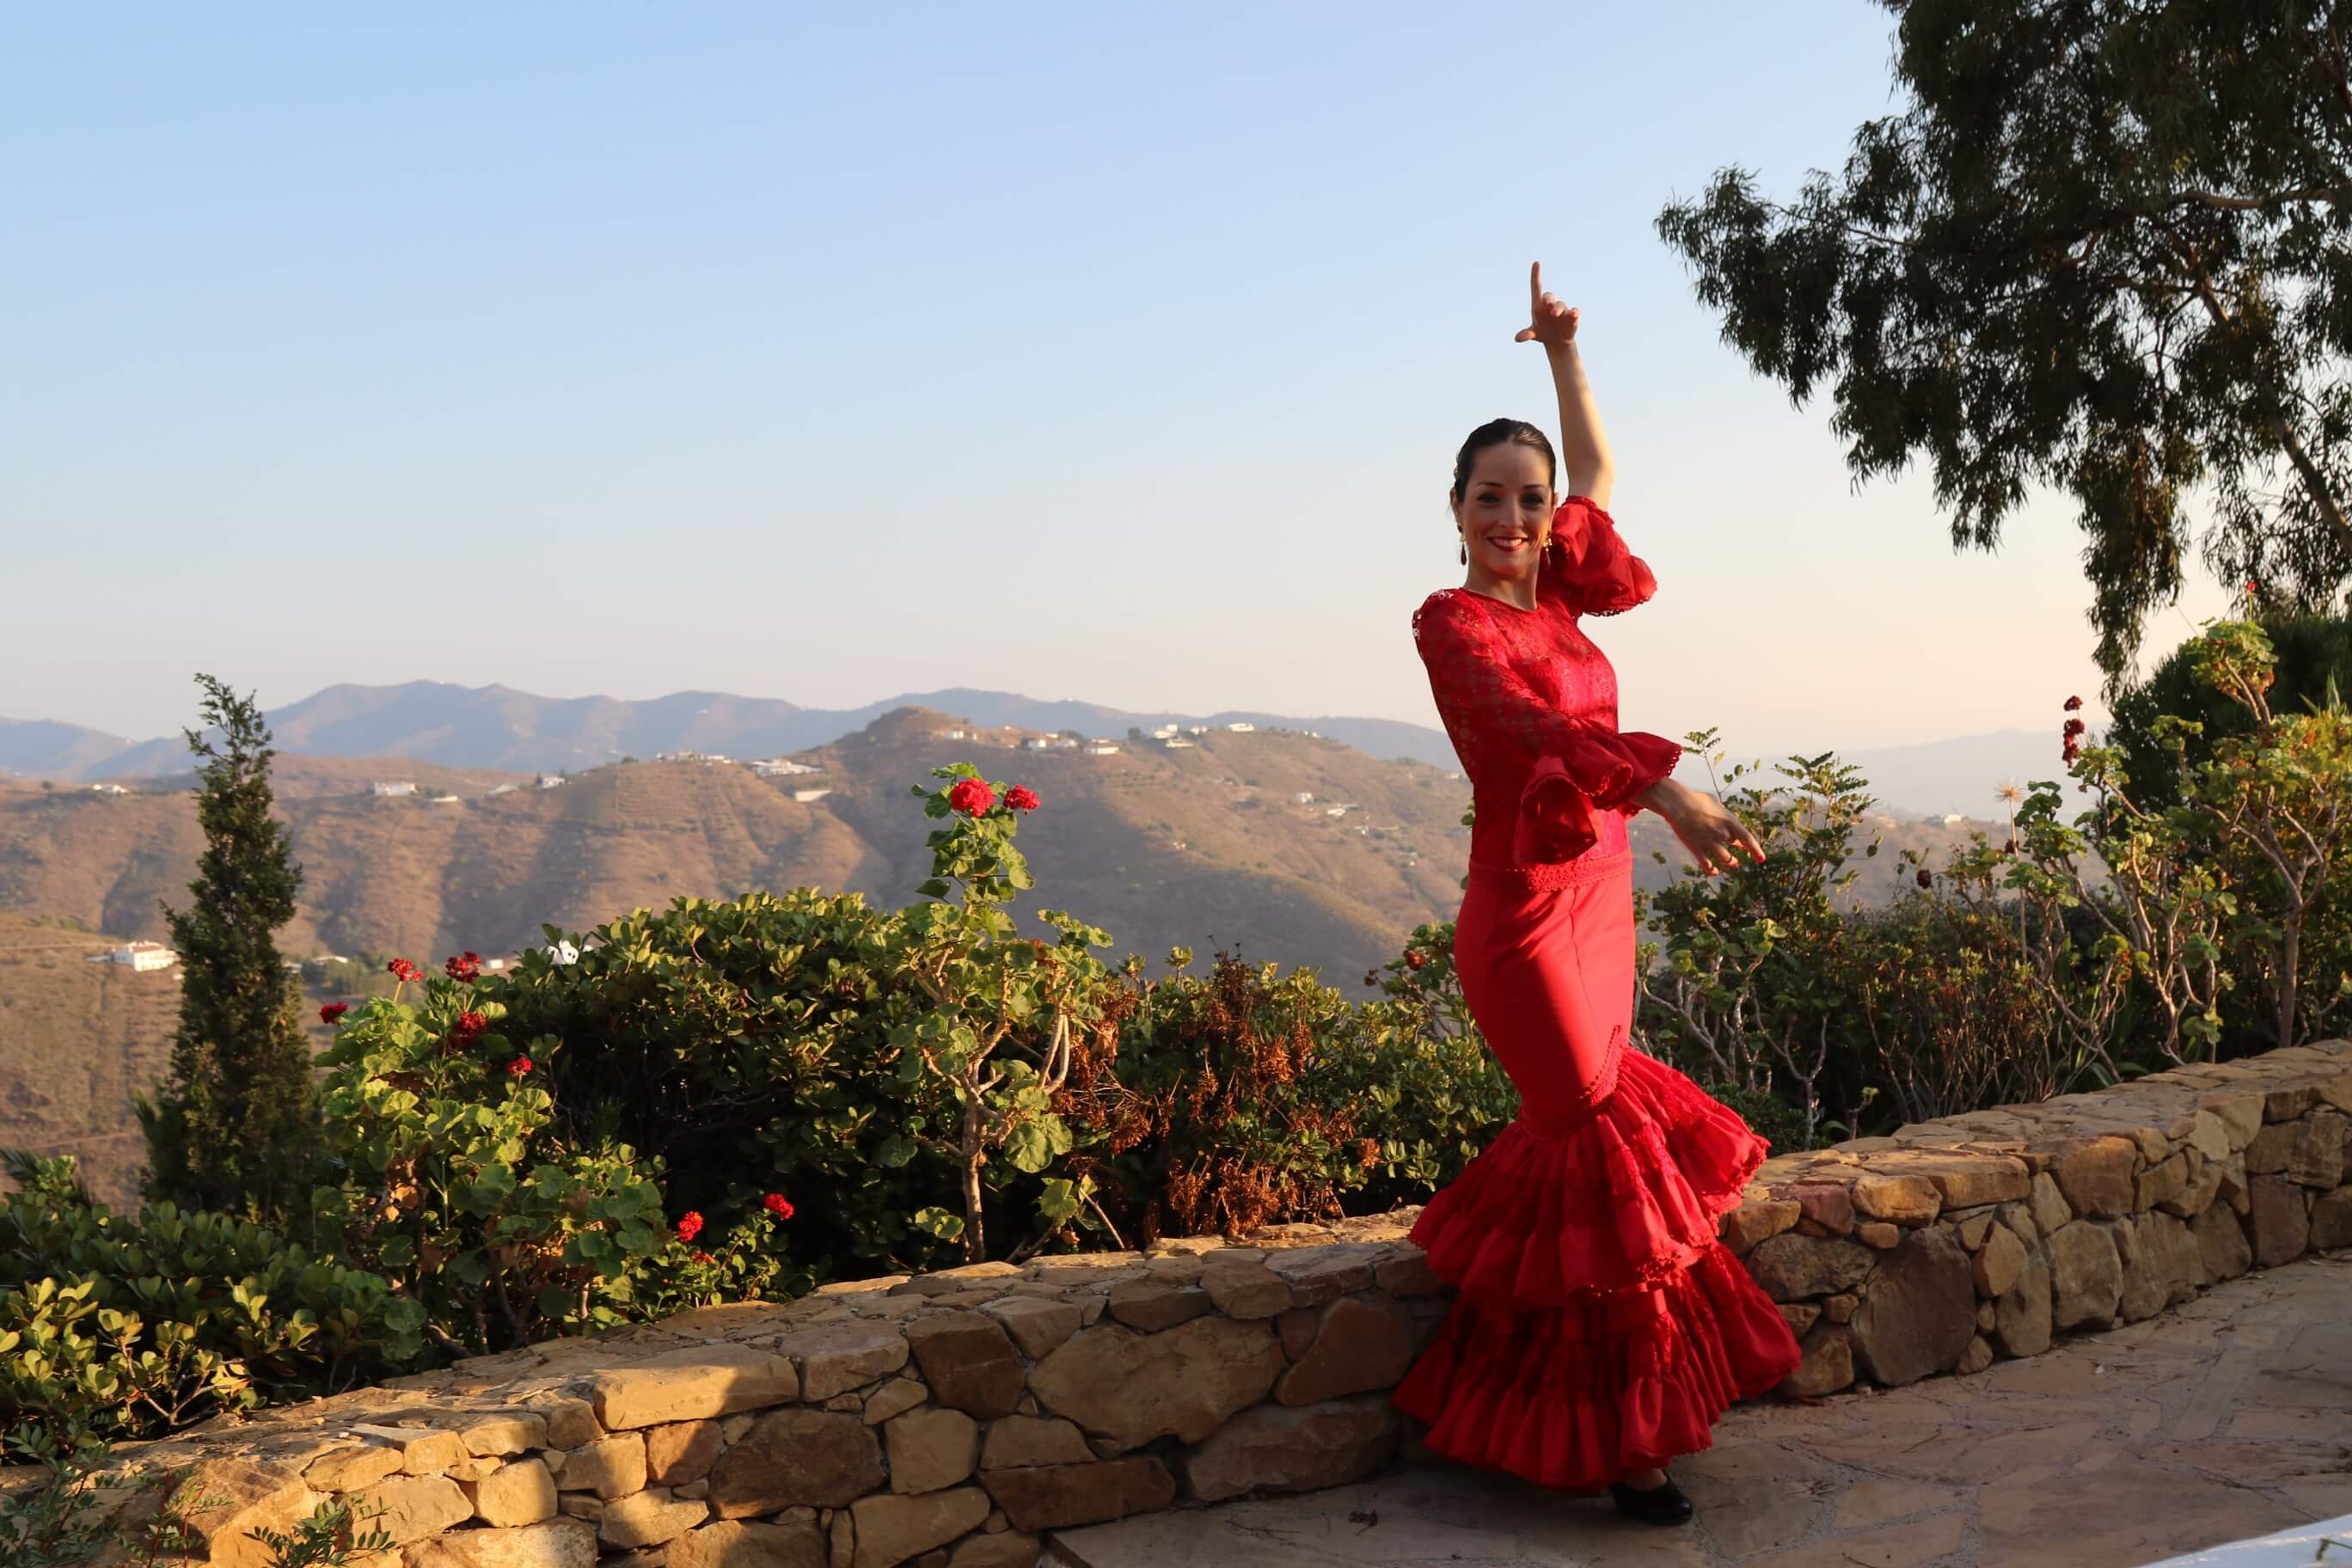 Flamenco Dancer - Why Spain Should be Your Next Culinary Destination, Delectable Destinations, Carol Ketelson